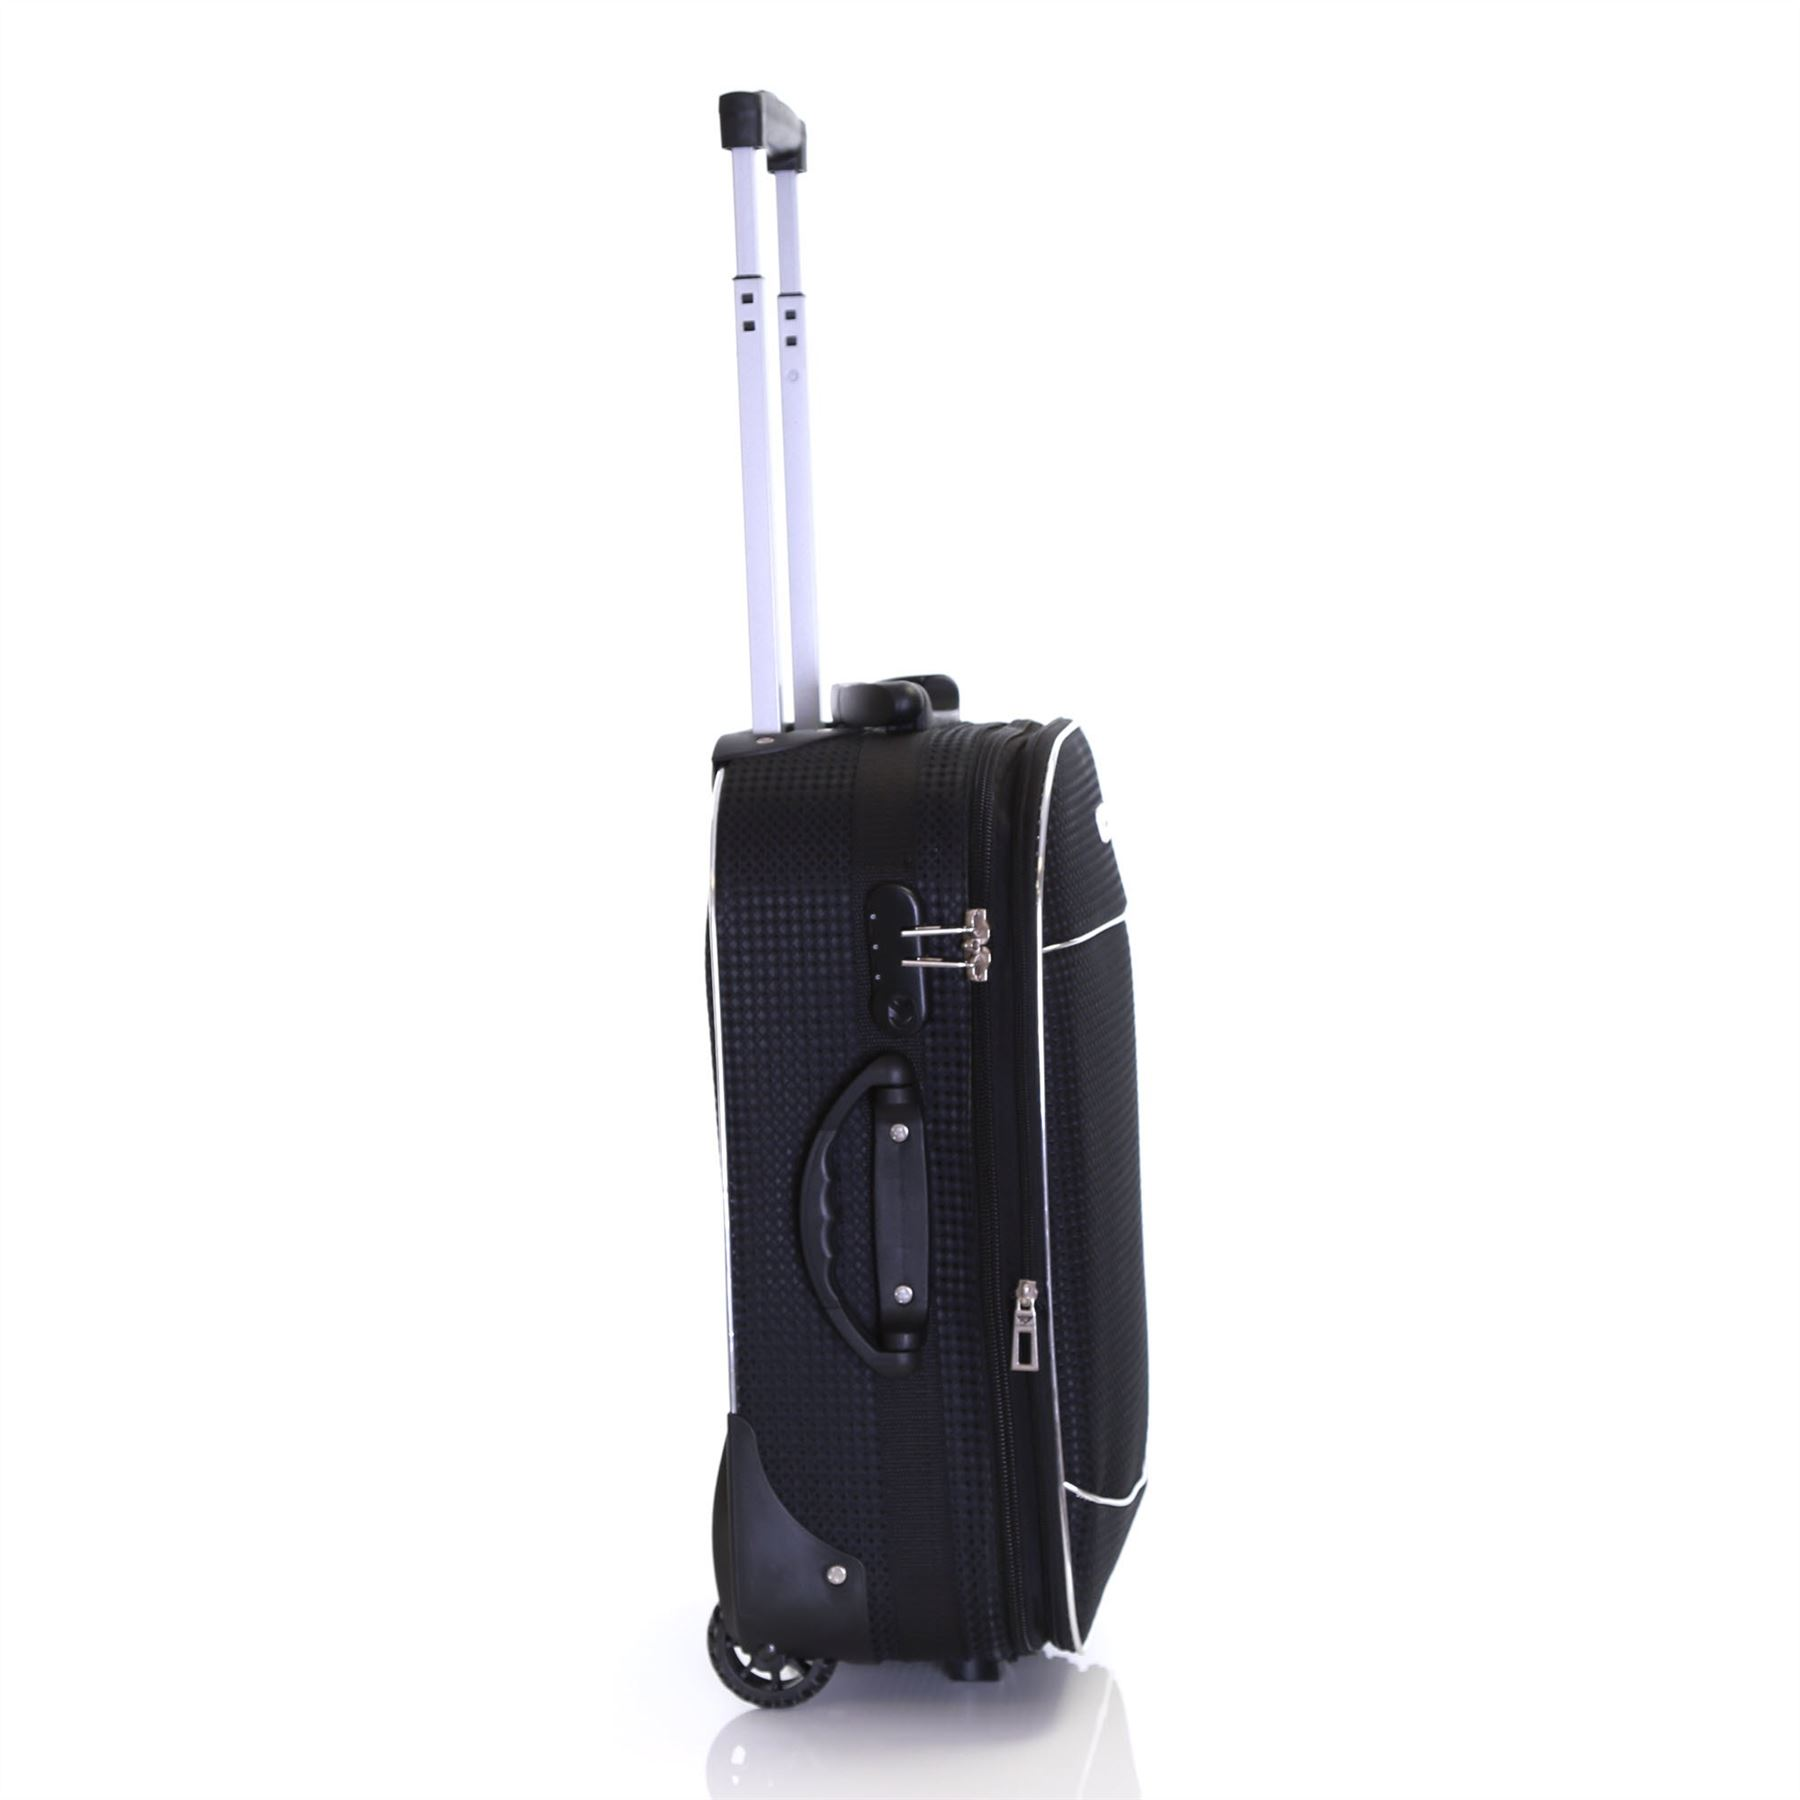 Set-of-2-Lightweight-Expandable-Luggage-Trolleys-Suitcases-Cases-Bags-Set thumbnail 7